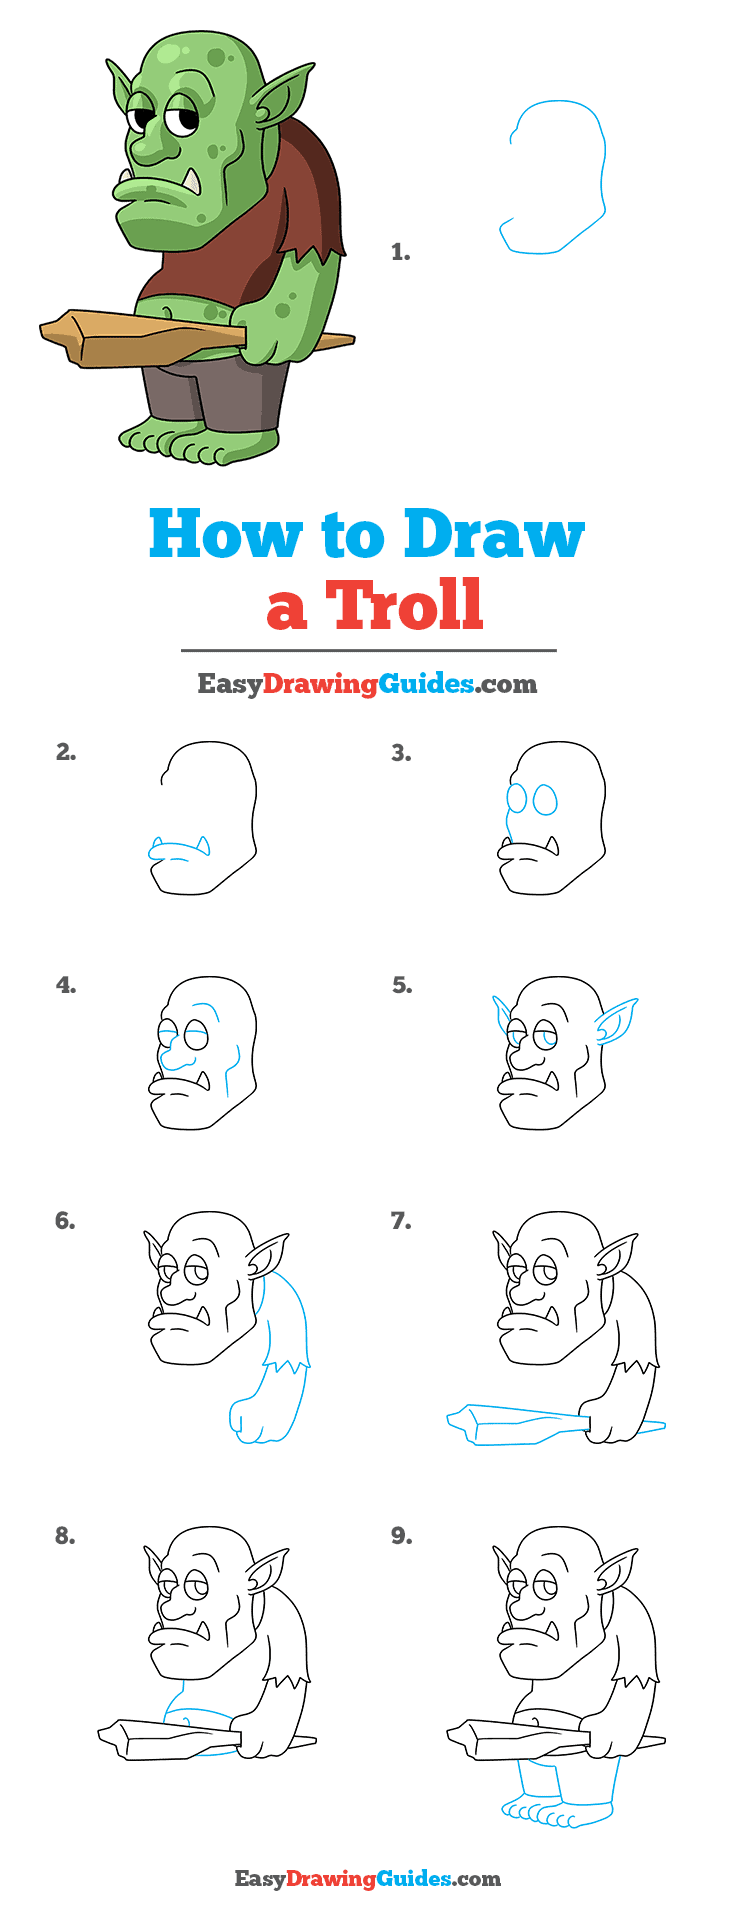 How to Draw a Troll Step by Step Tutorial Image